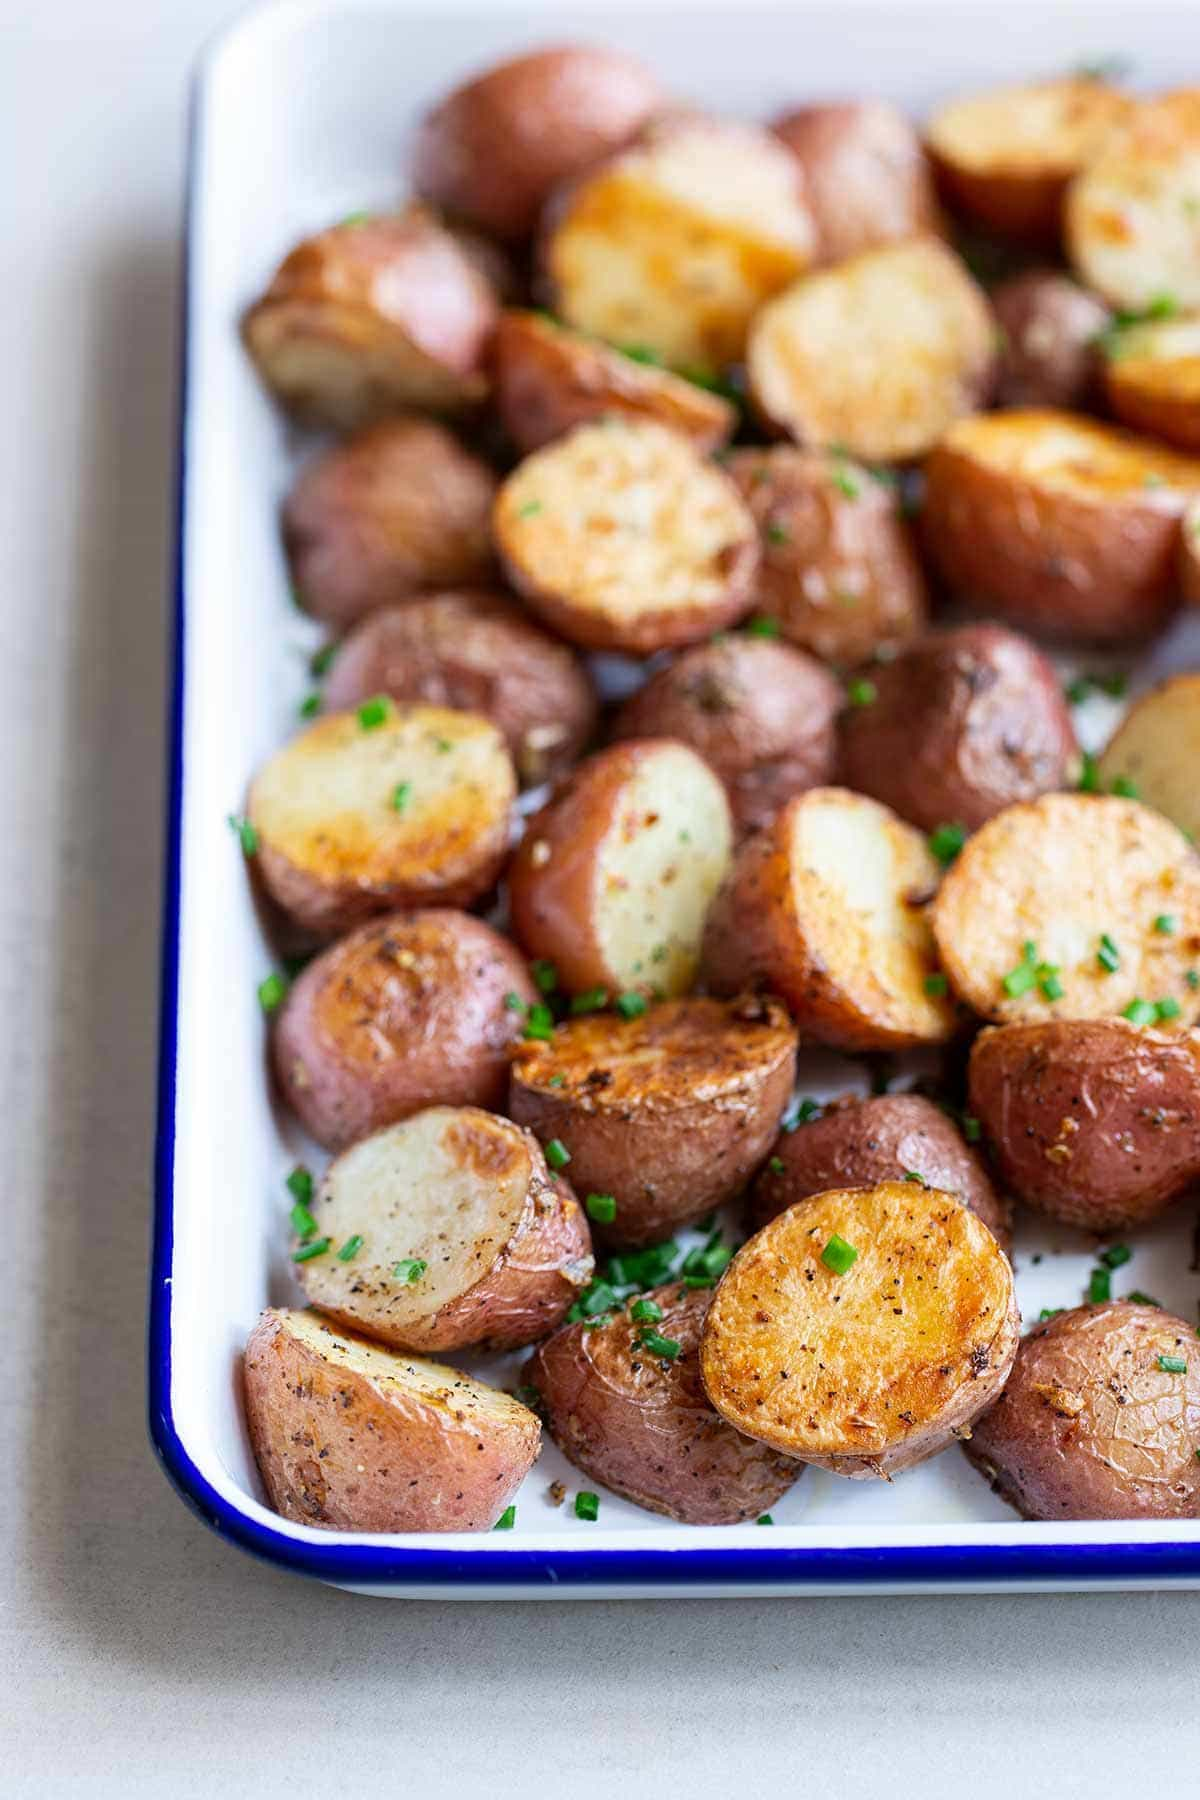 Oven-Roasted Potatoes in a white sheet pan